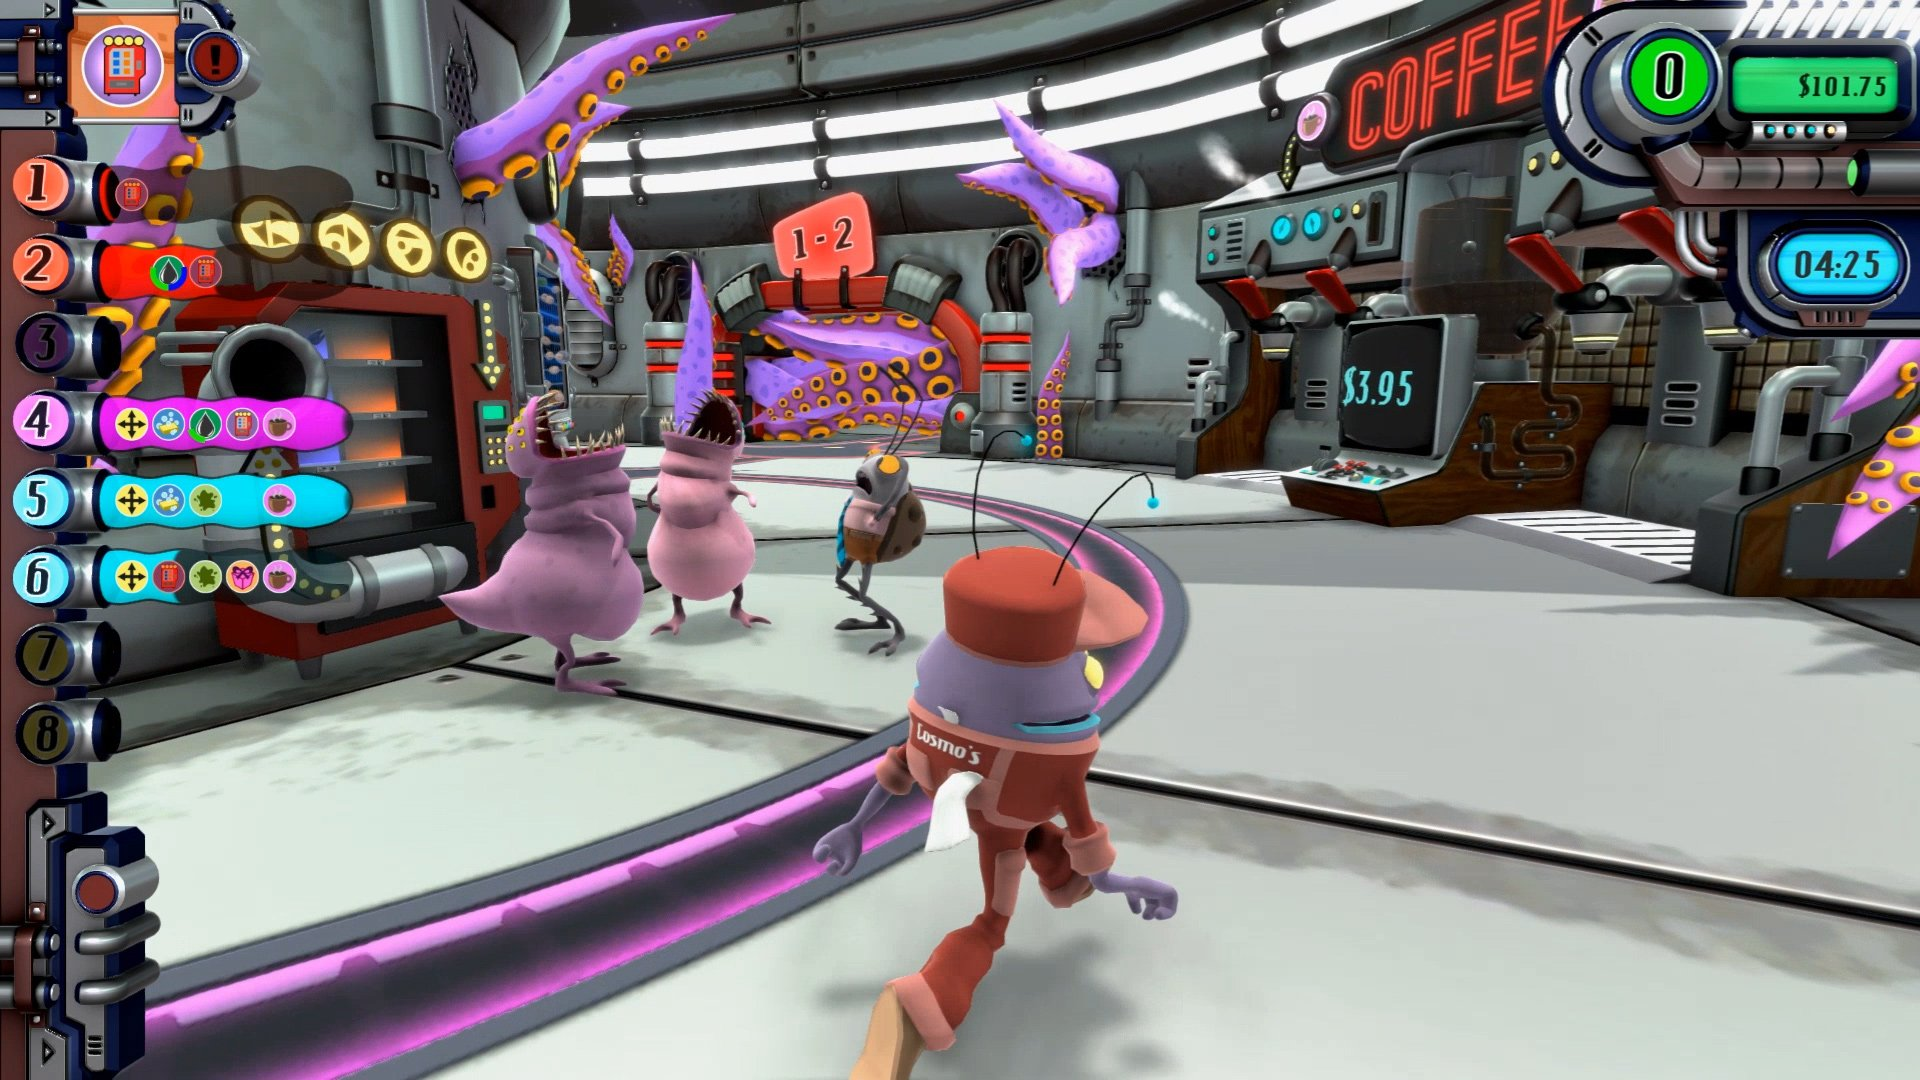 Manage your own interstellar gas station in Cosmo's Quickstop screenshot